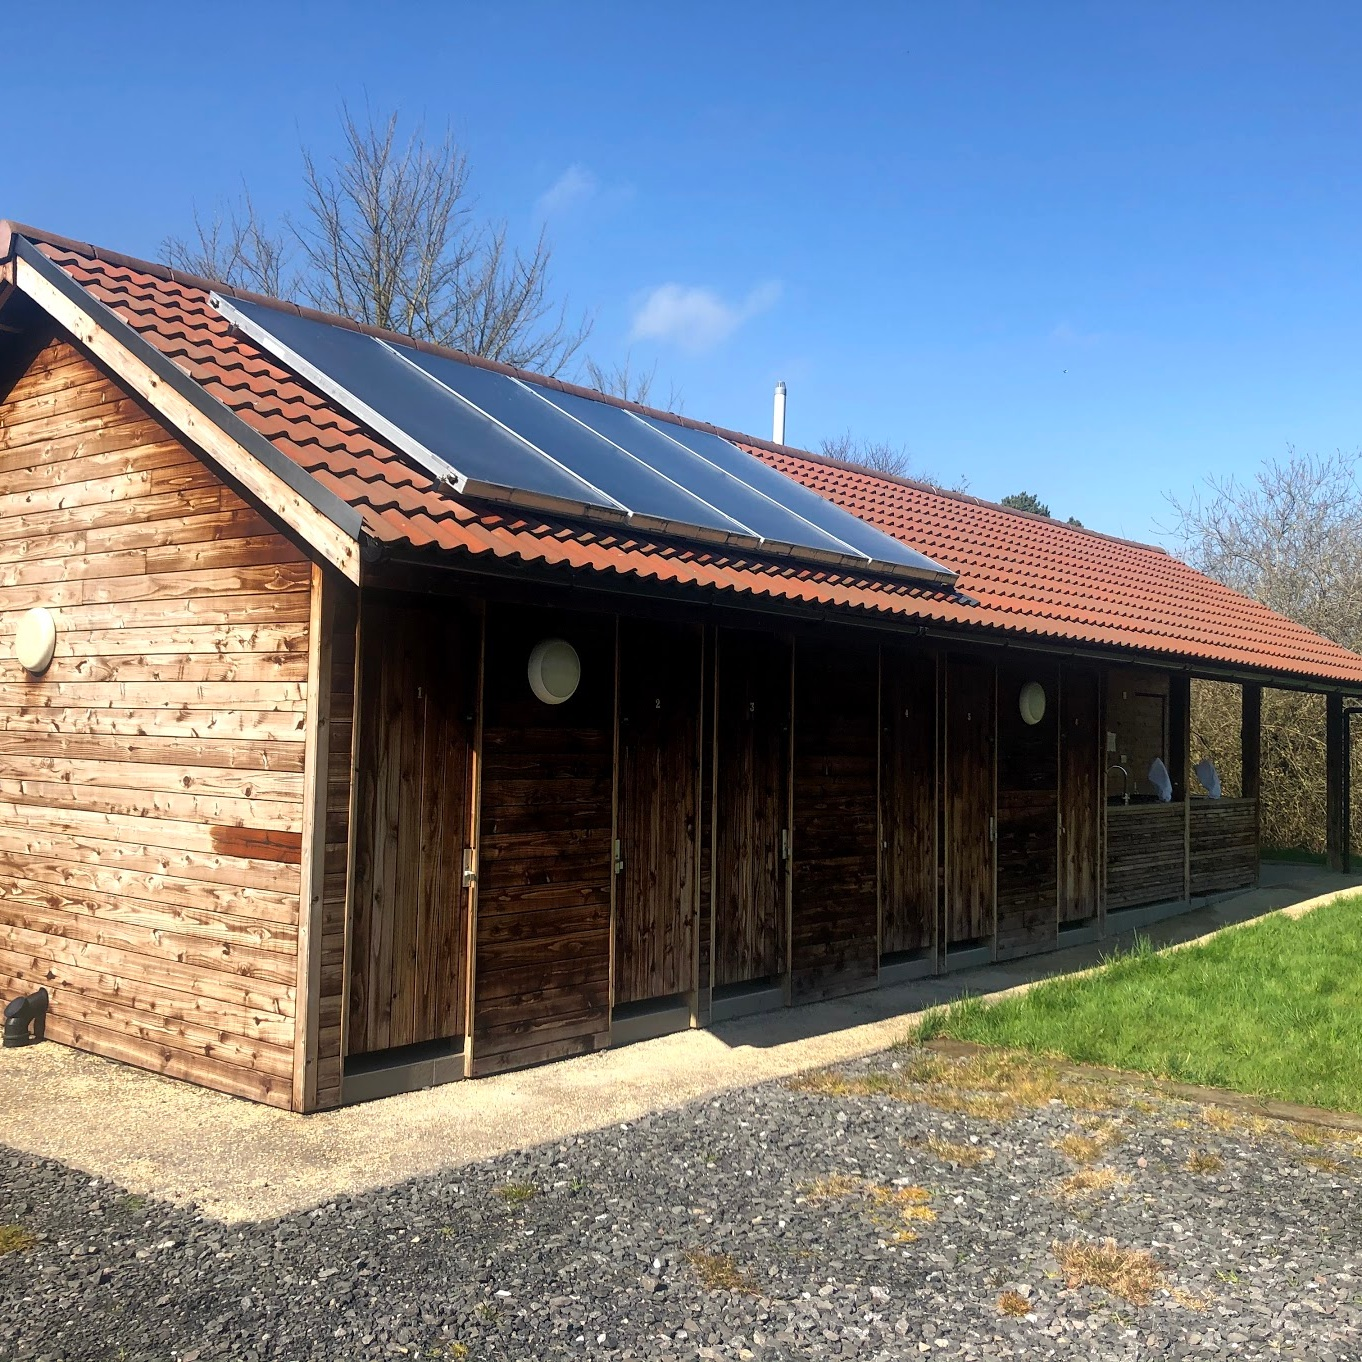 Toilet block and amenities at Somermead, Outdoor Camping and Activity Venue